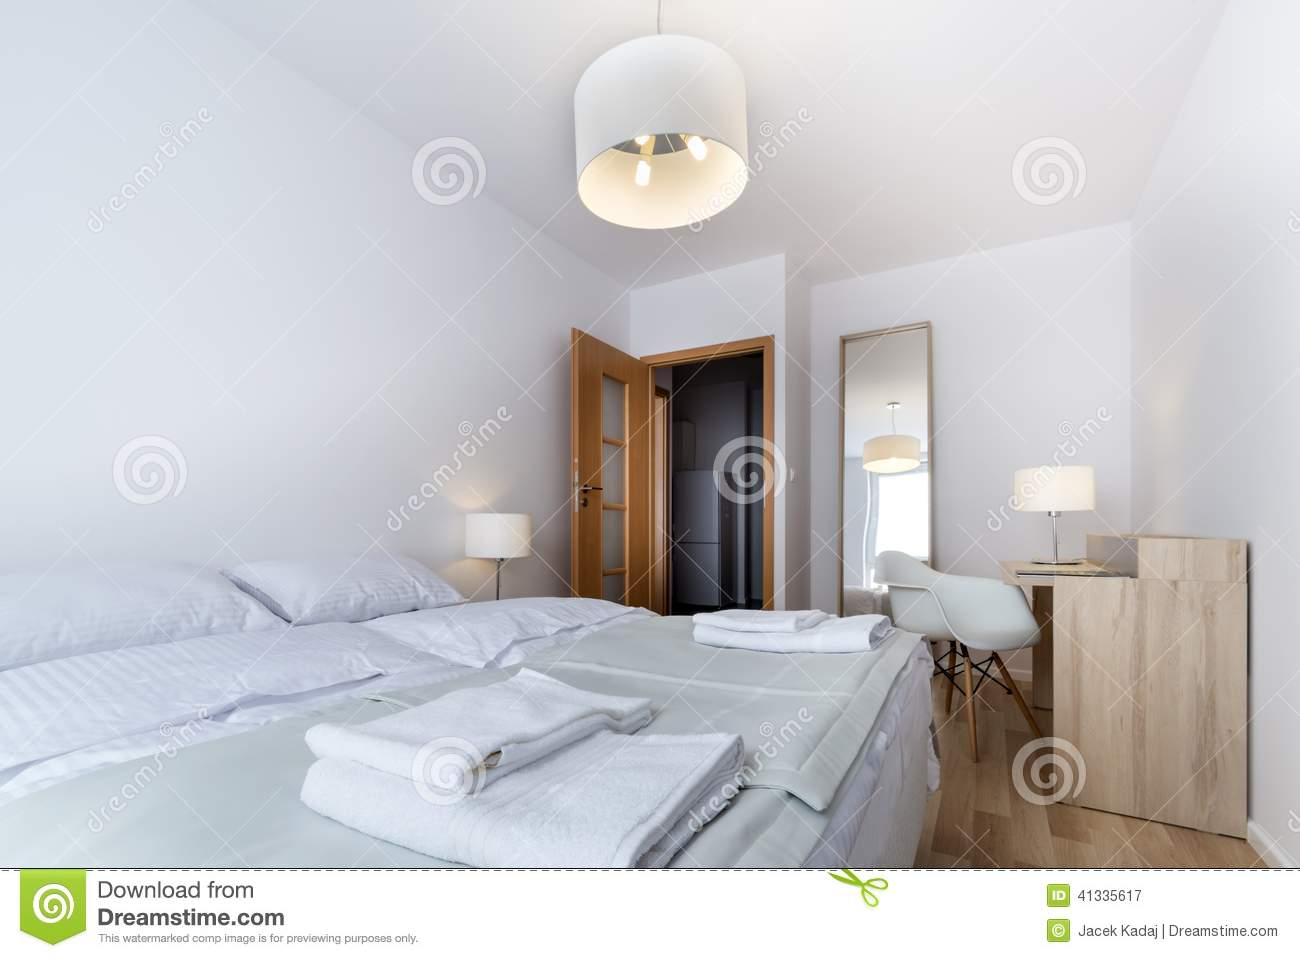 Bad Design Modern Double Bad In Modern Interior Design Room Stock Image Image Of